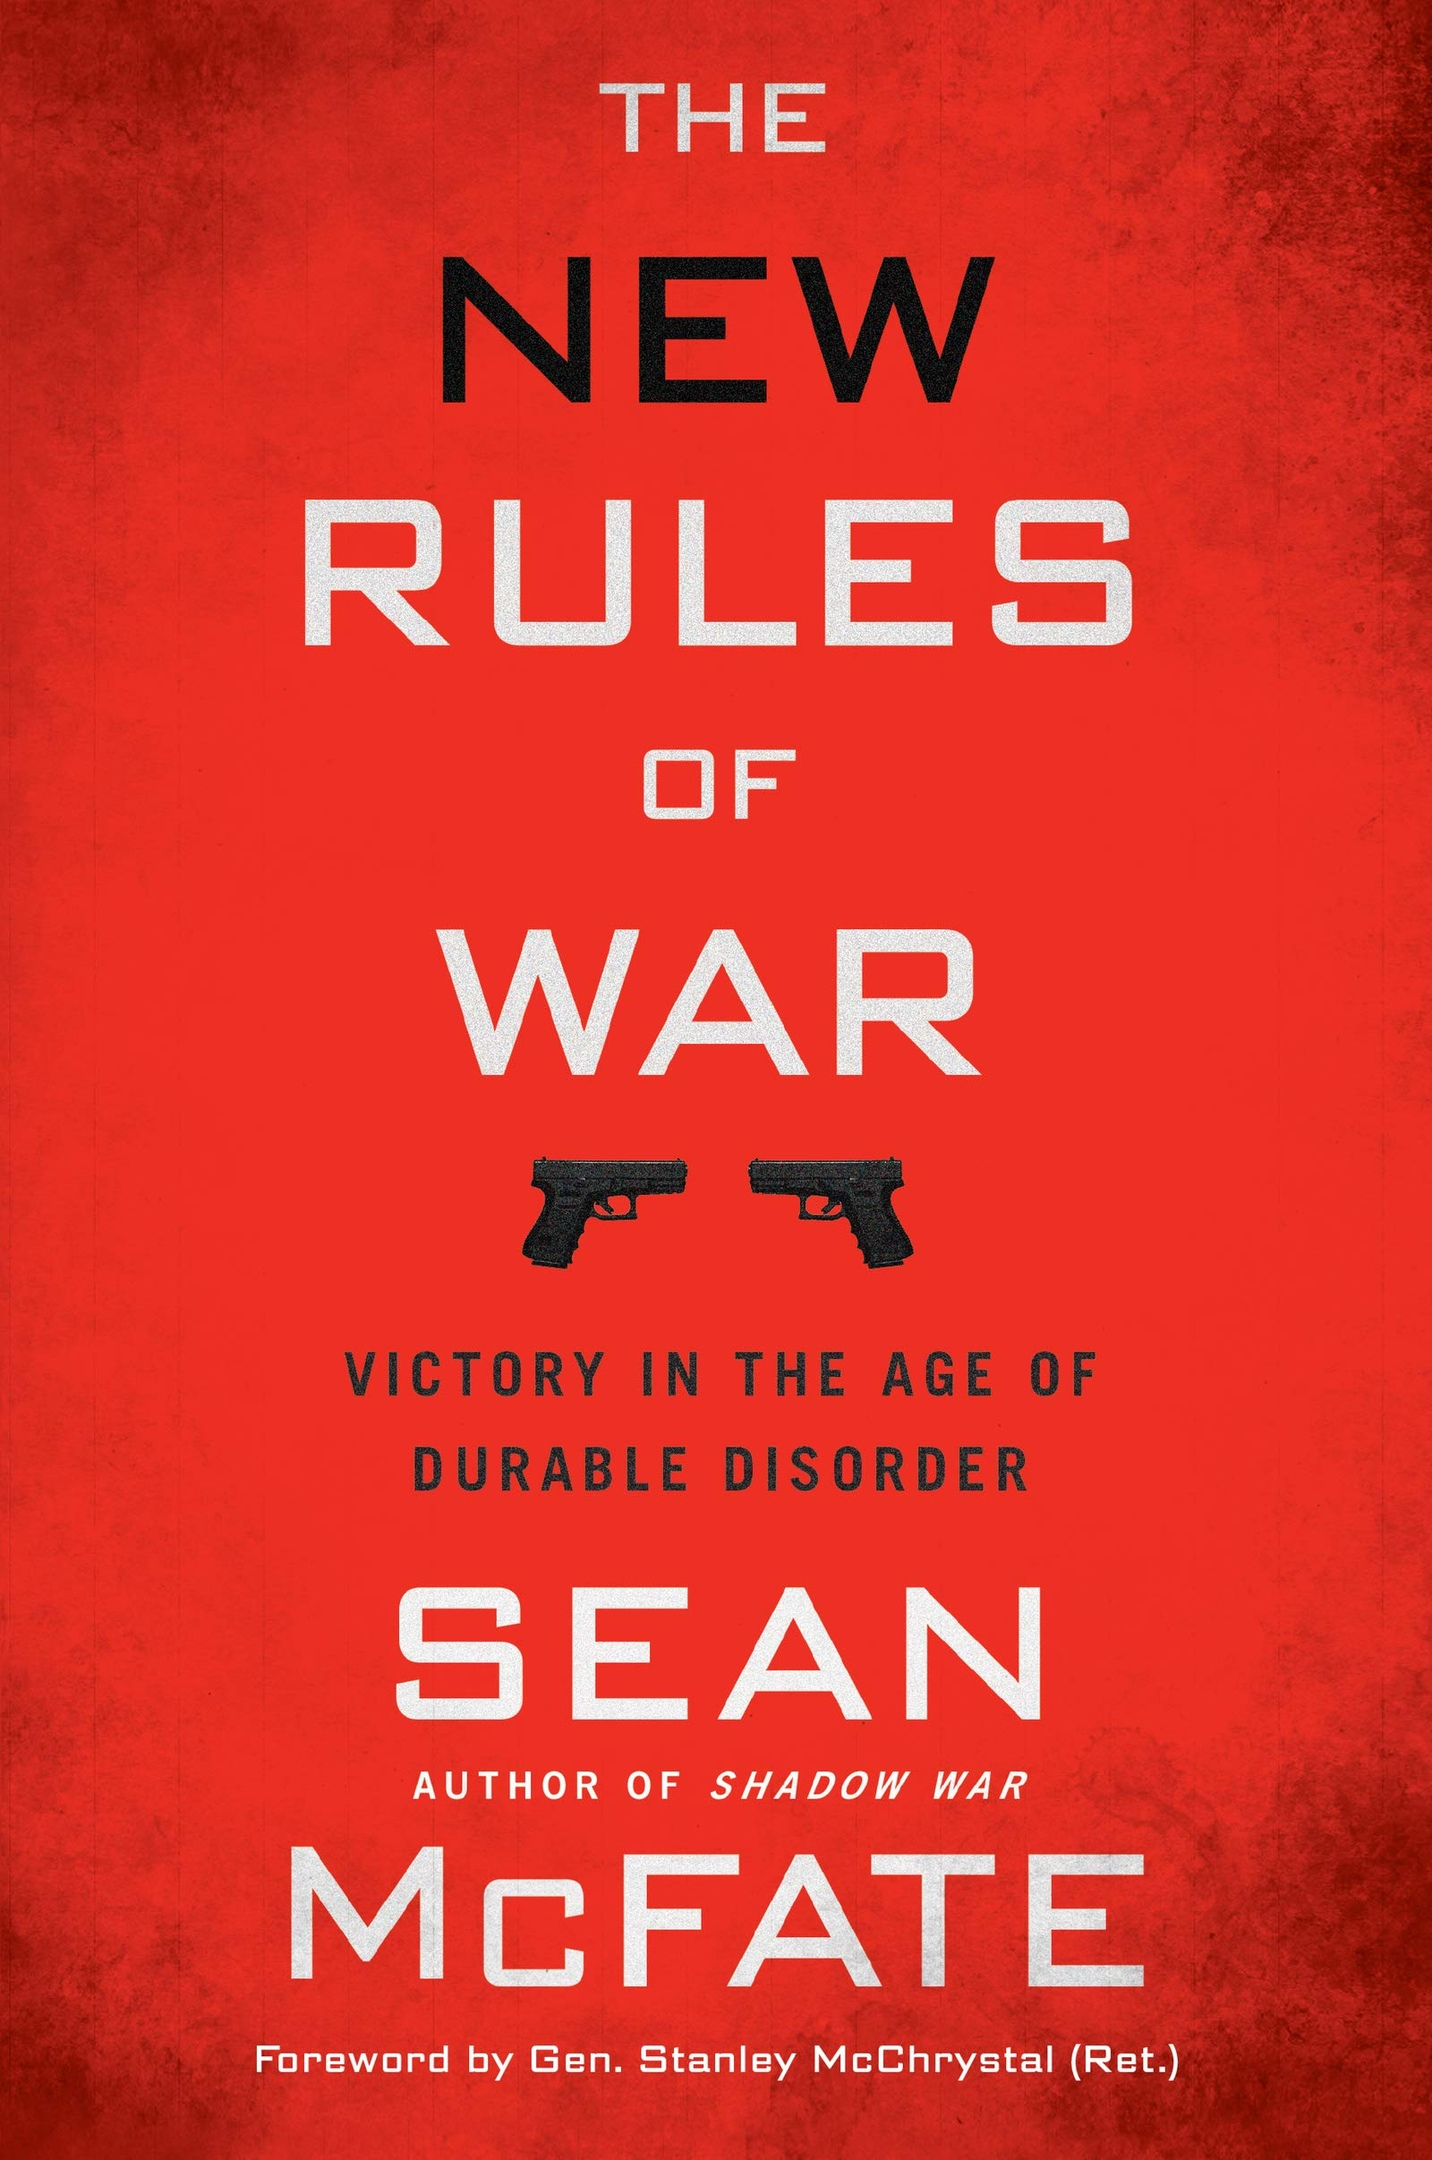 Sean McFate – The New Rules Of War